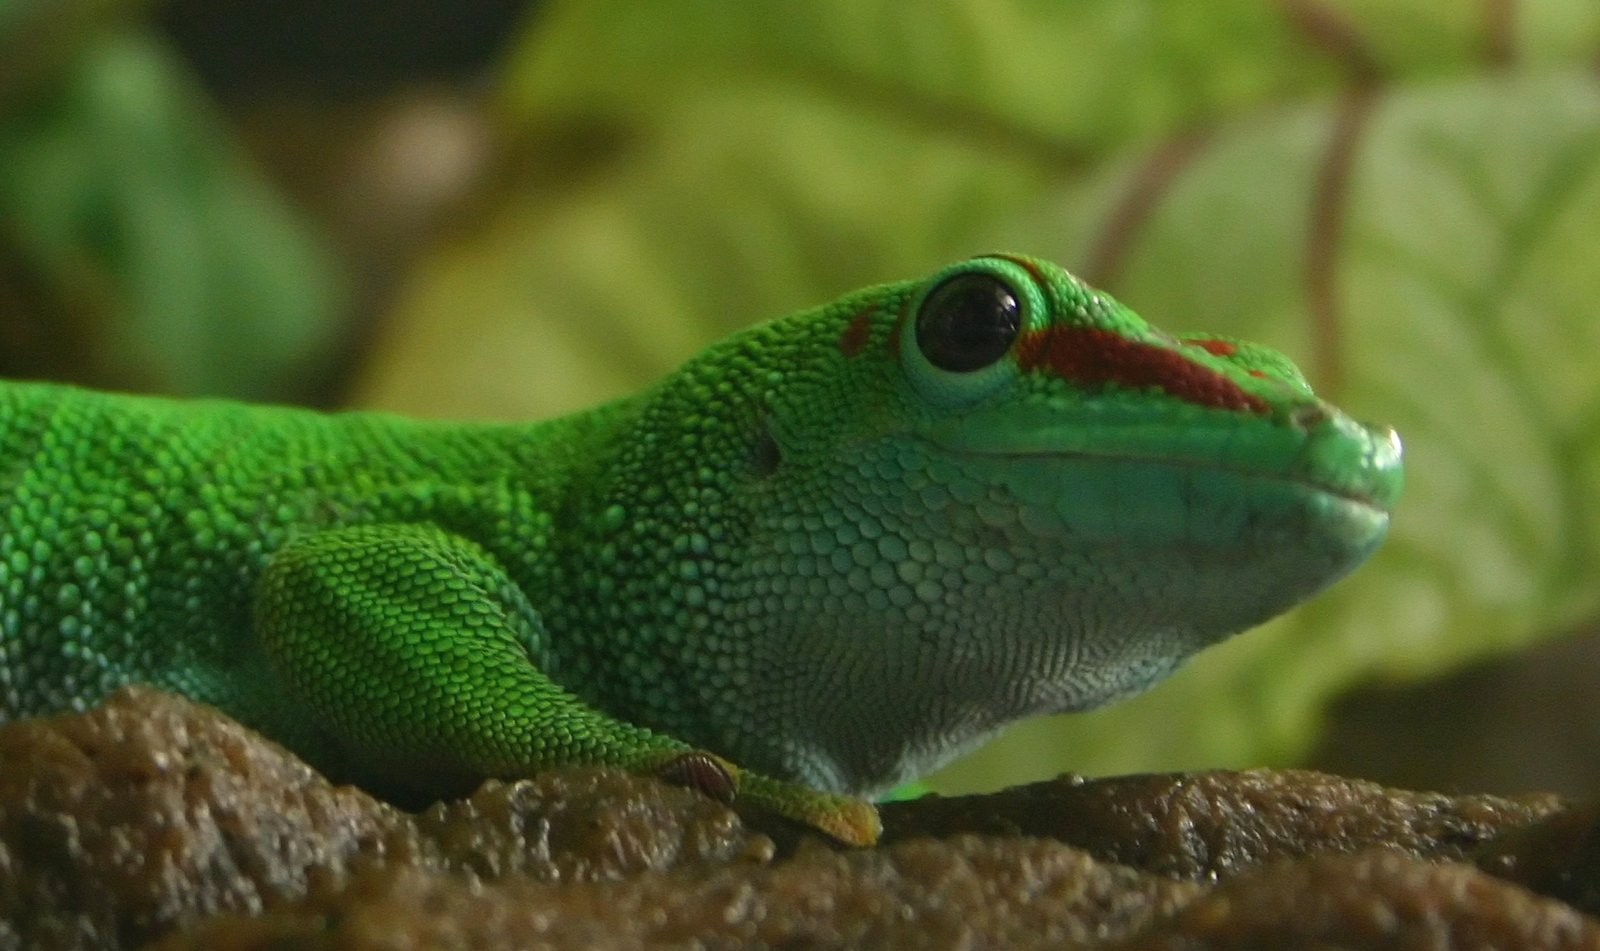 madagascar giant day gecko